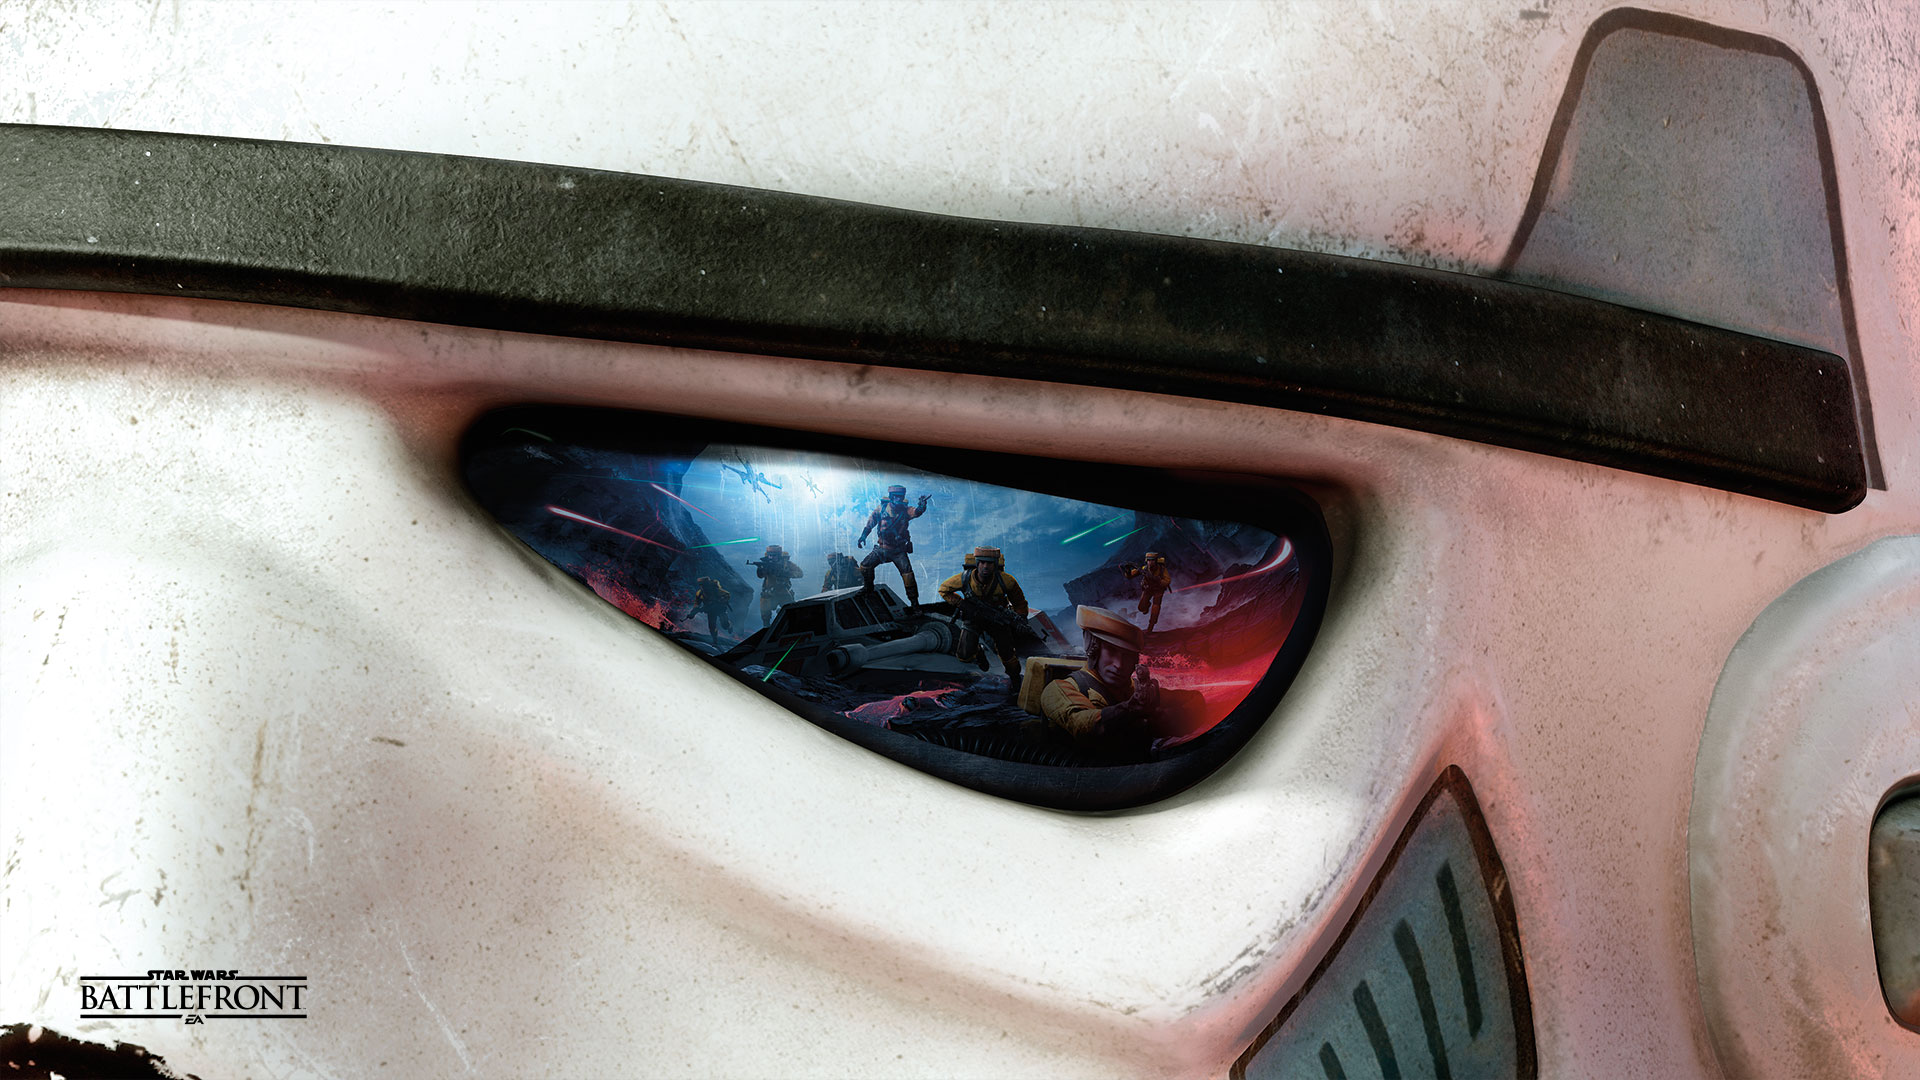 star_wars_battlefront (41)